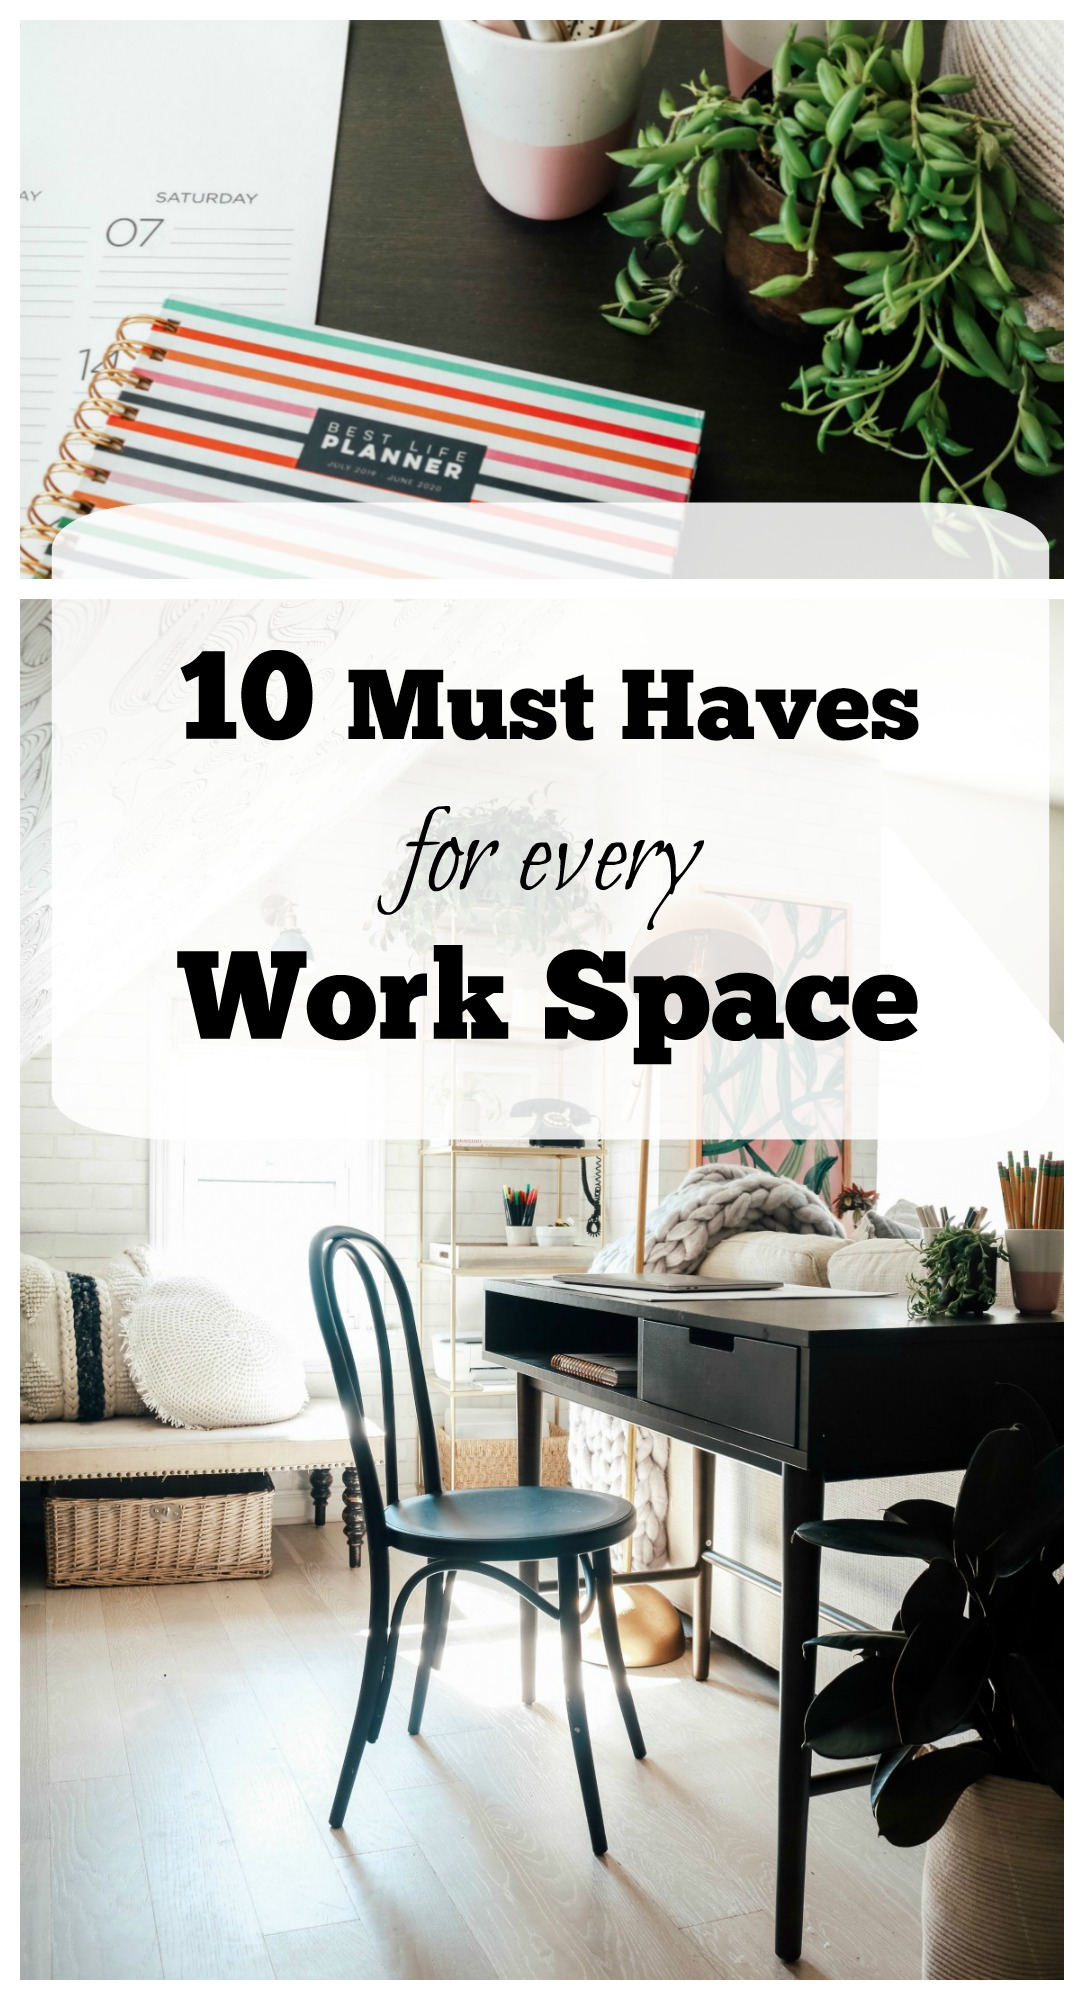 10 Must Haves for Every Work Space